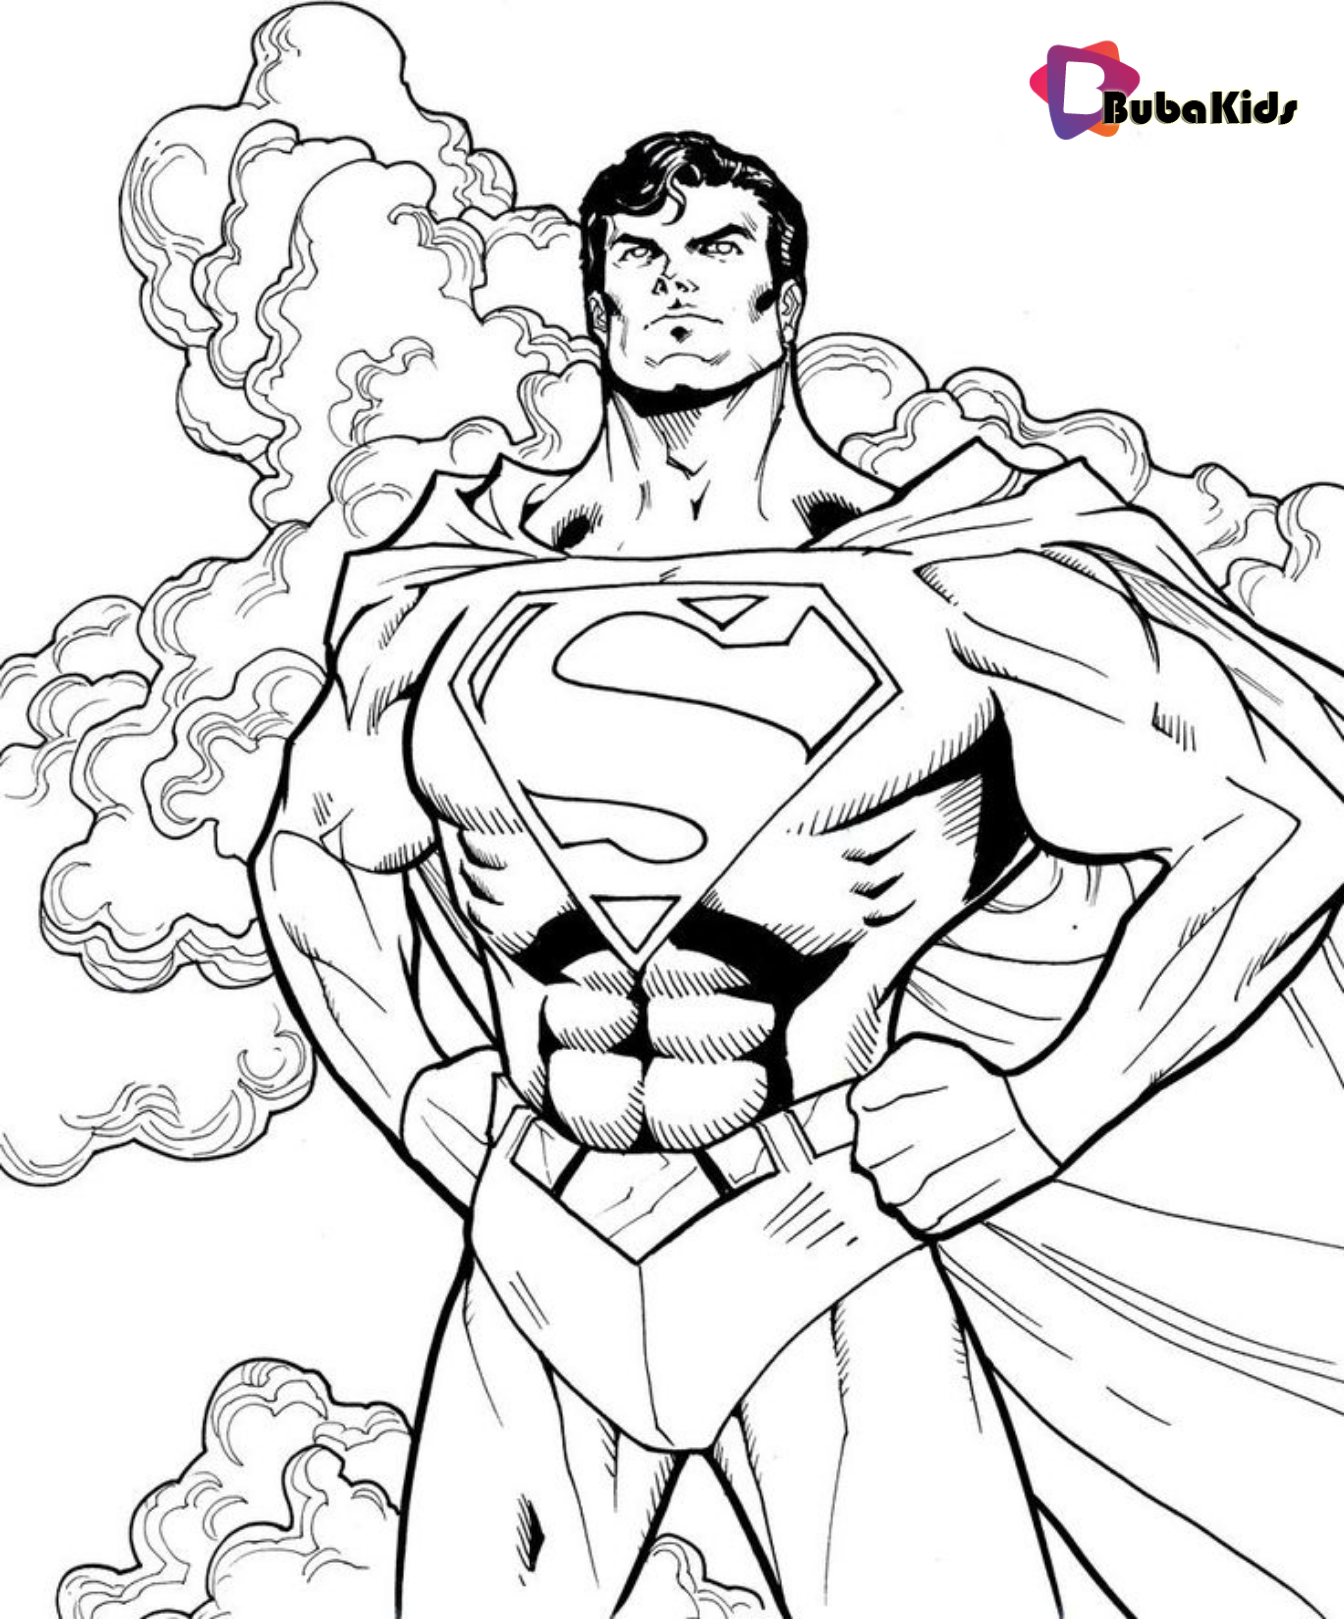 Printable Superman Coloring Pages Idea on bubakids.com ...